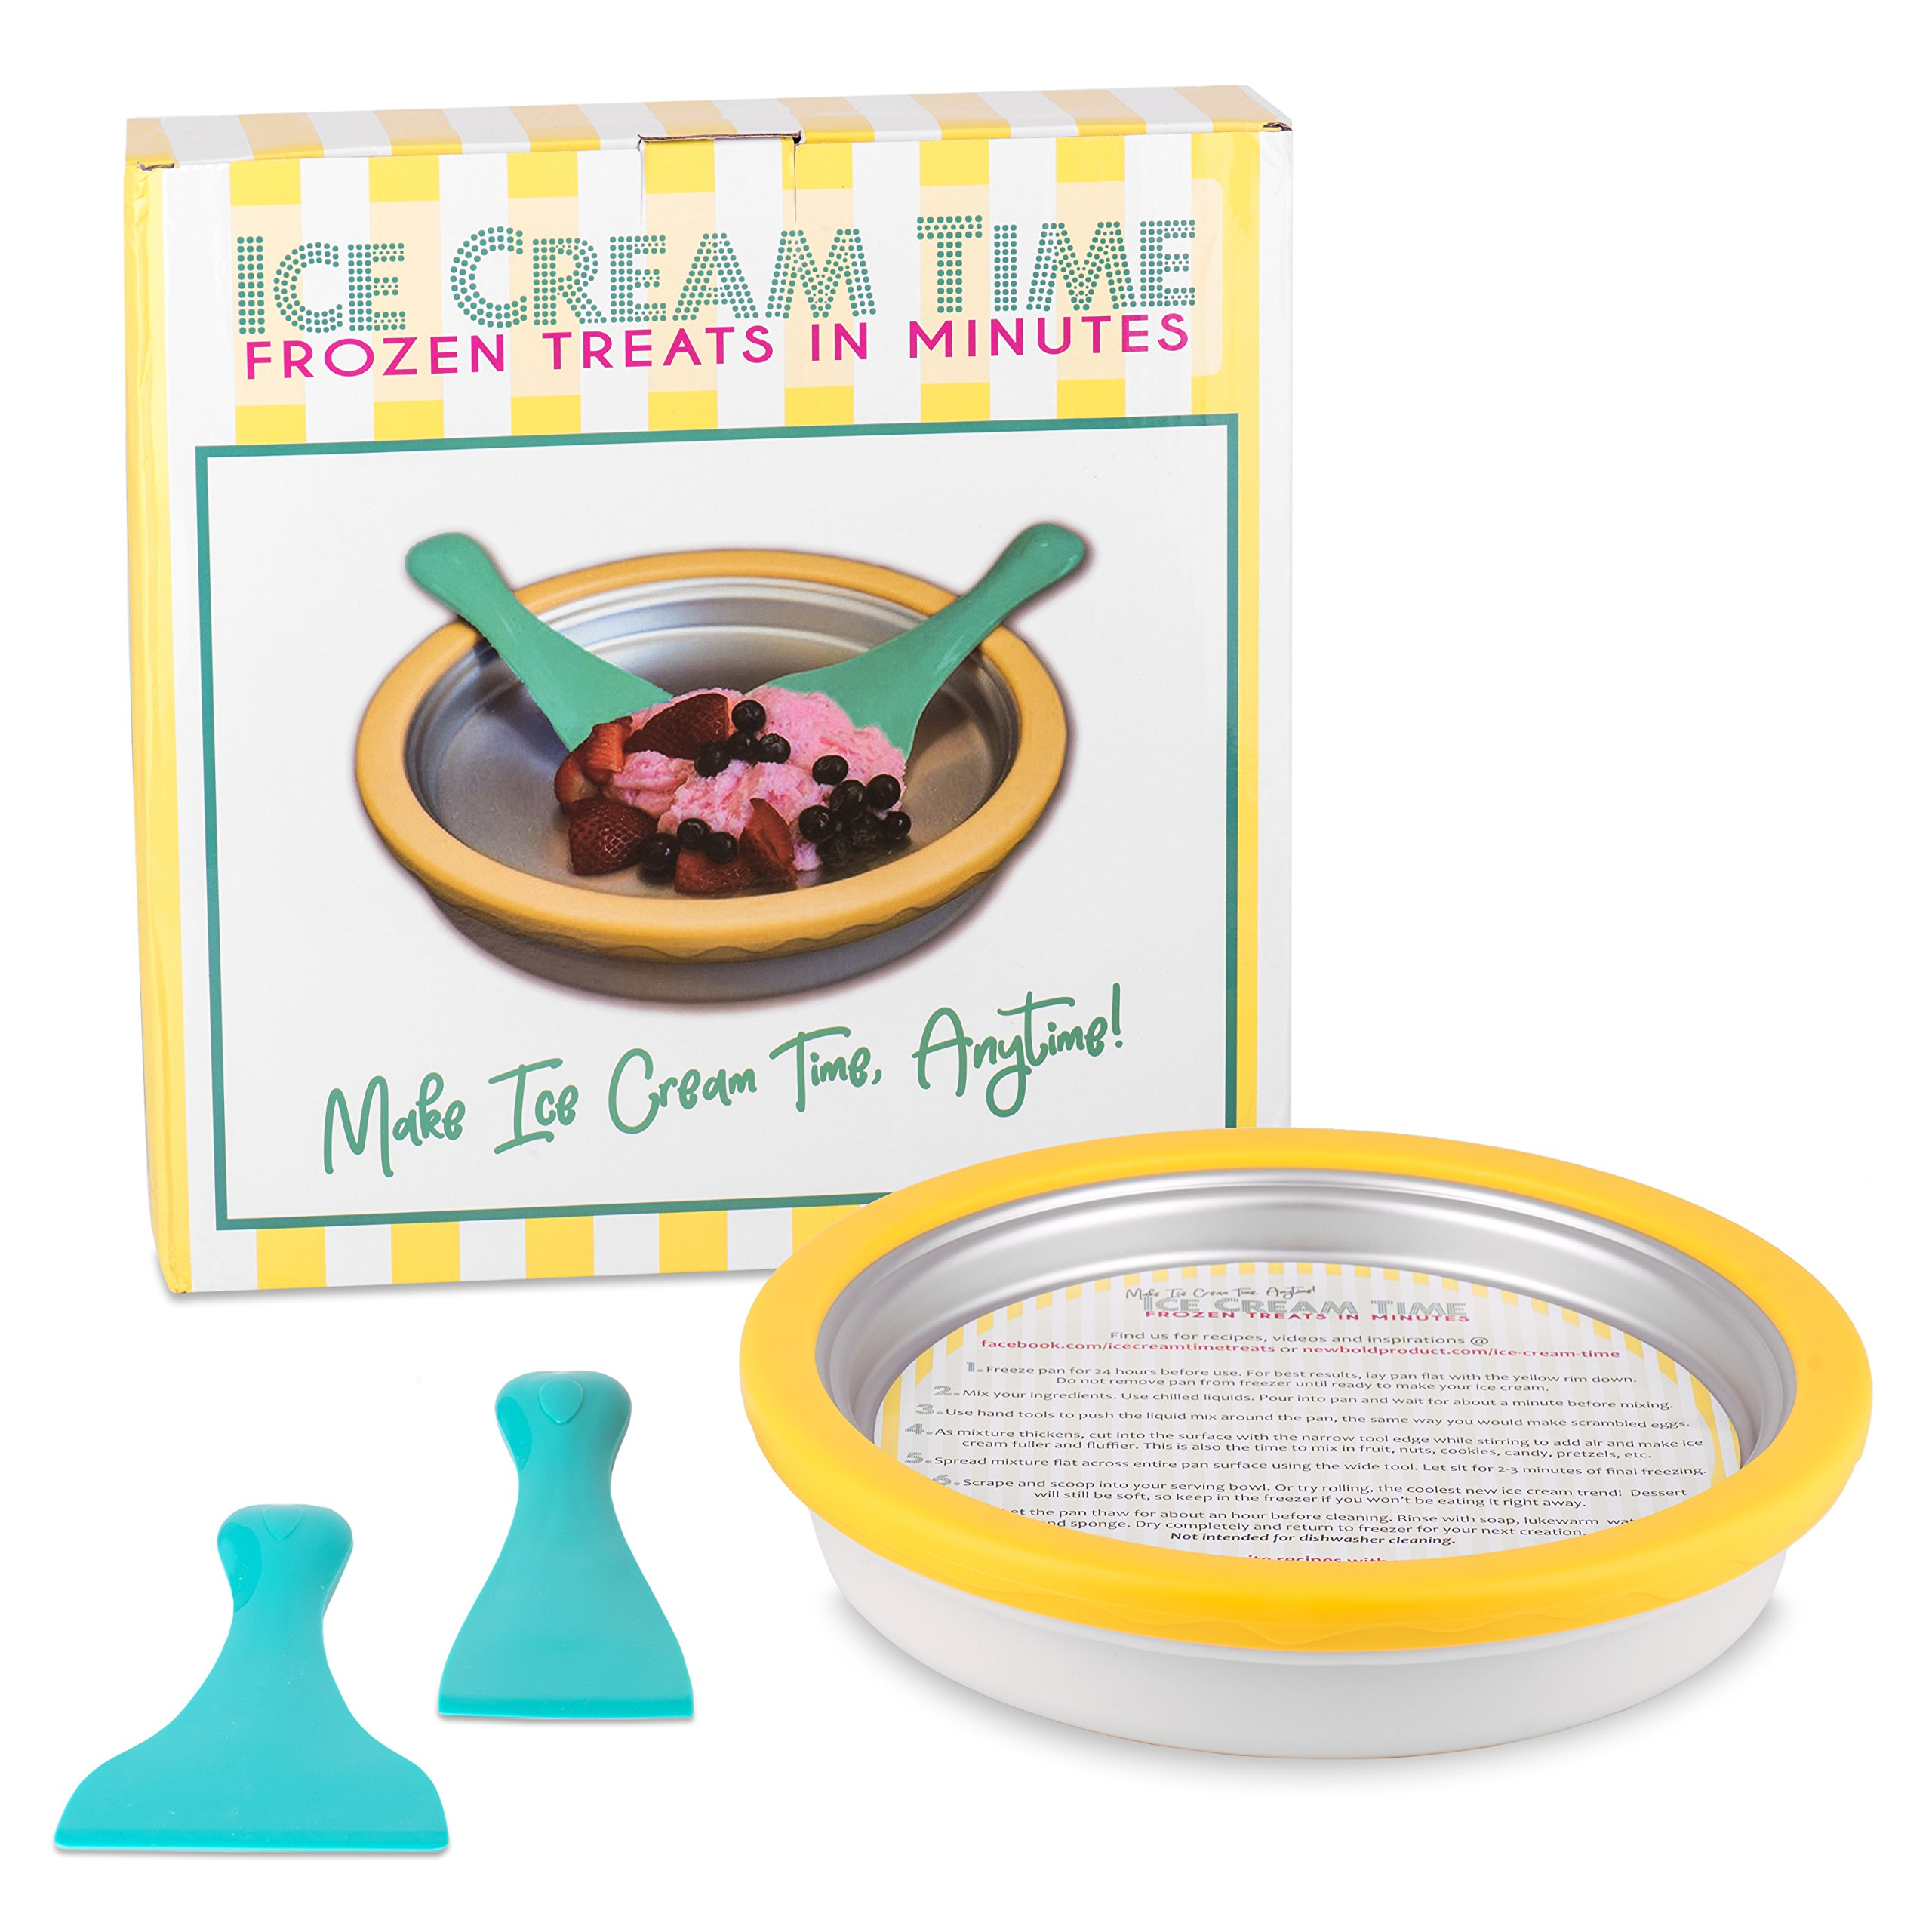 Ice Cream Time - Frozen Treats in Minutes - IceCream Maker Pan by New Bold Product (Image #1)